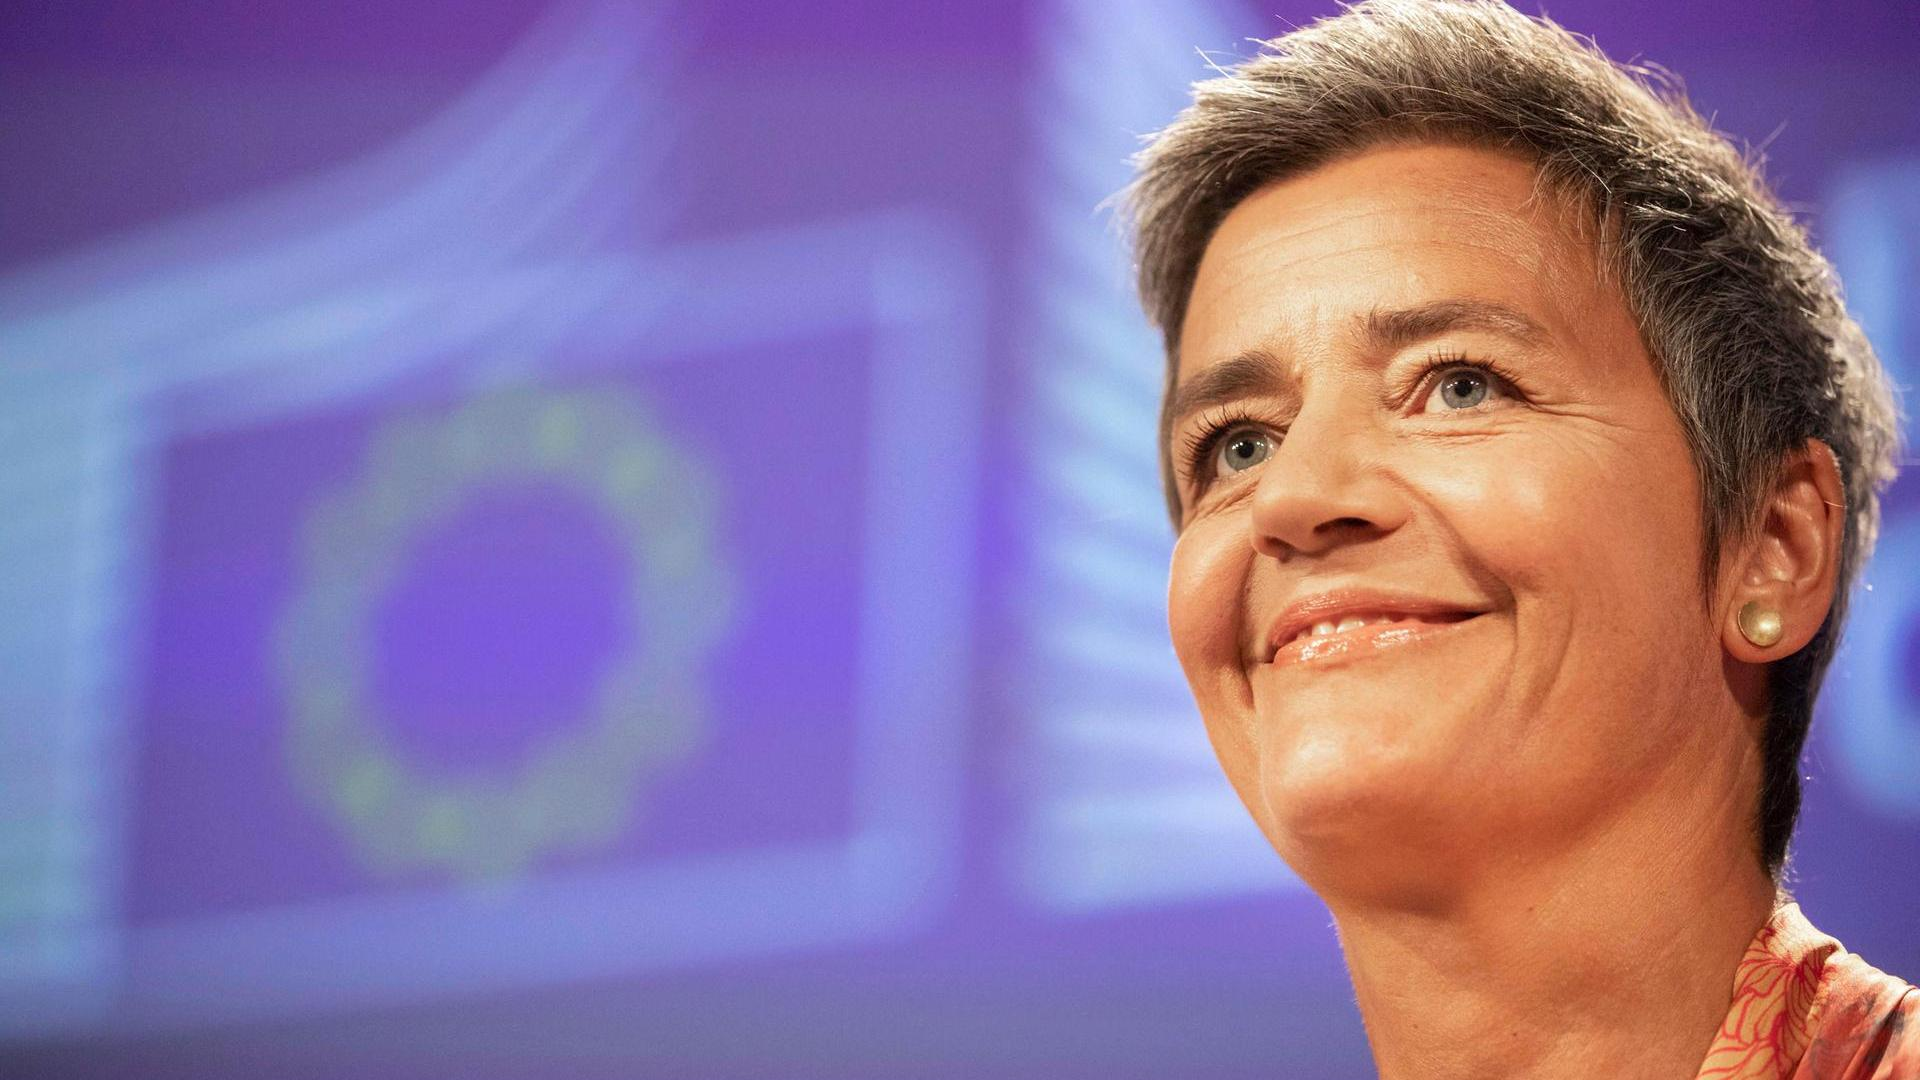 google rekordstrafe margrethe vestager nimmt es mit den internet riesen auf. Black Bedroom Furniture Sets. Home Design Ideas